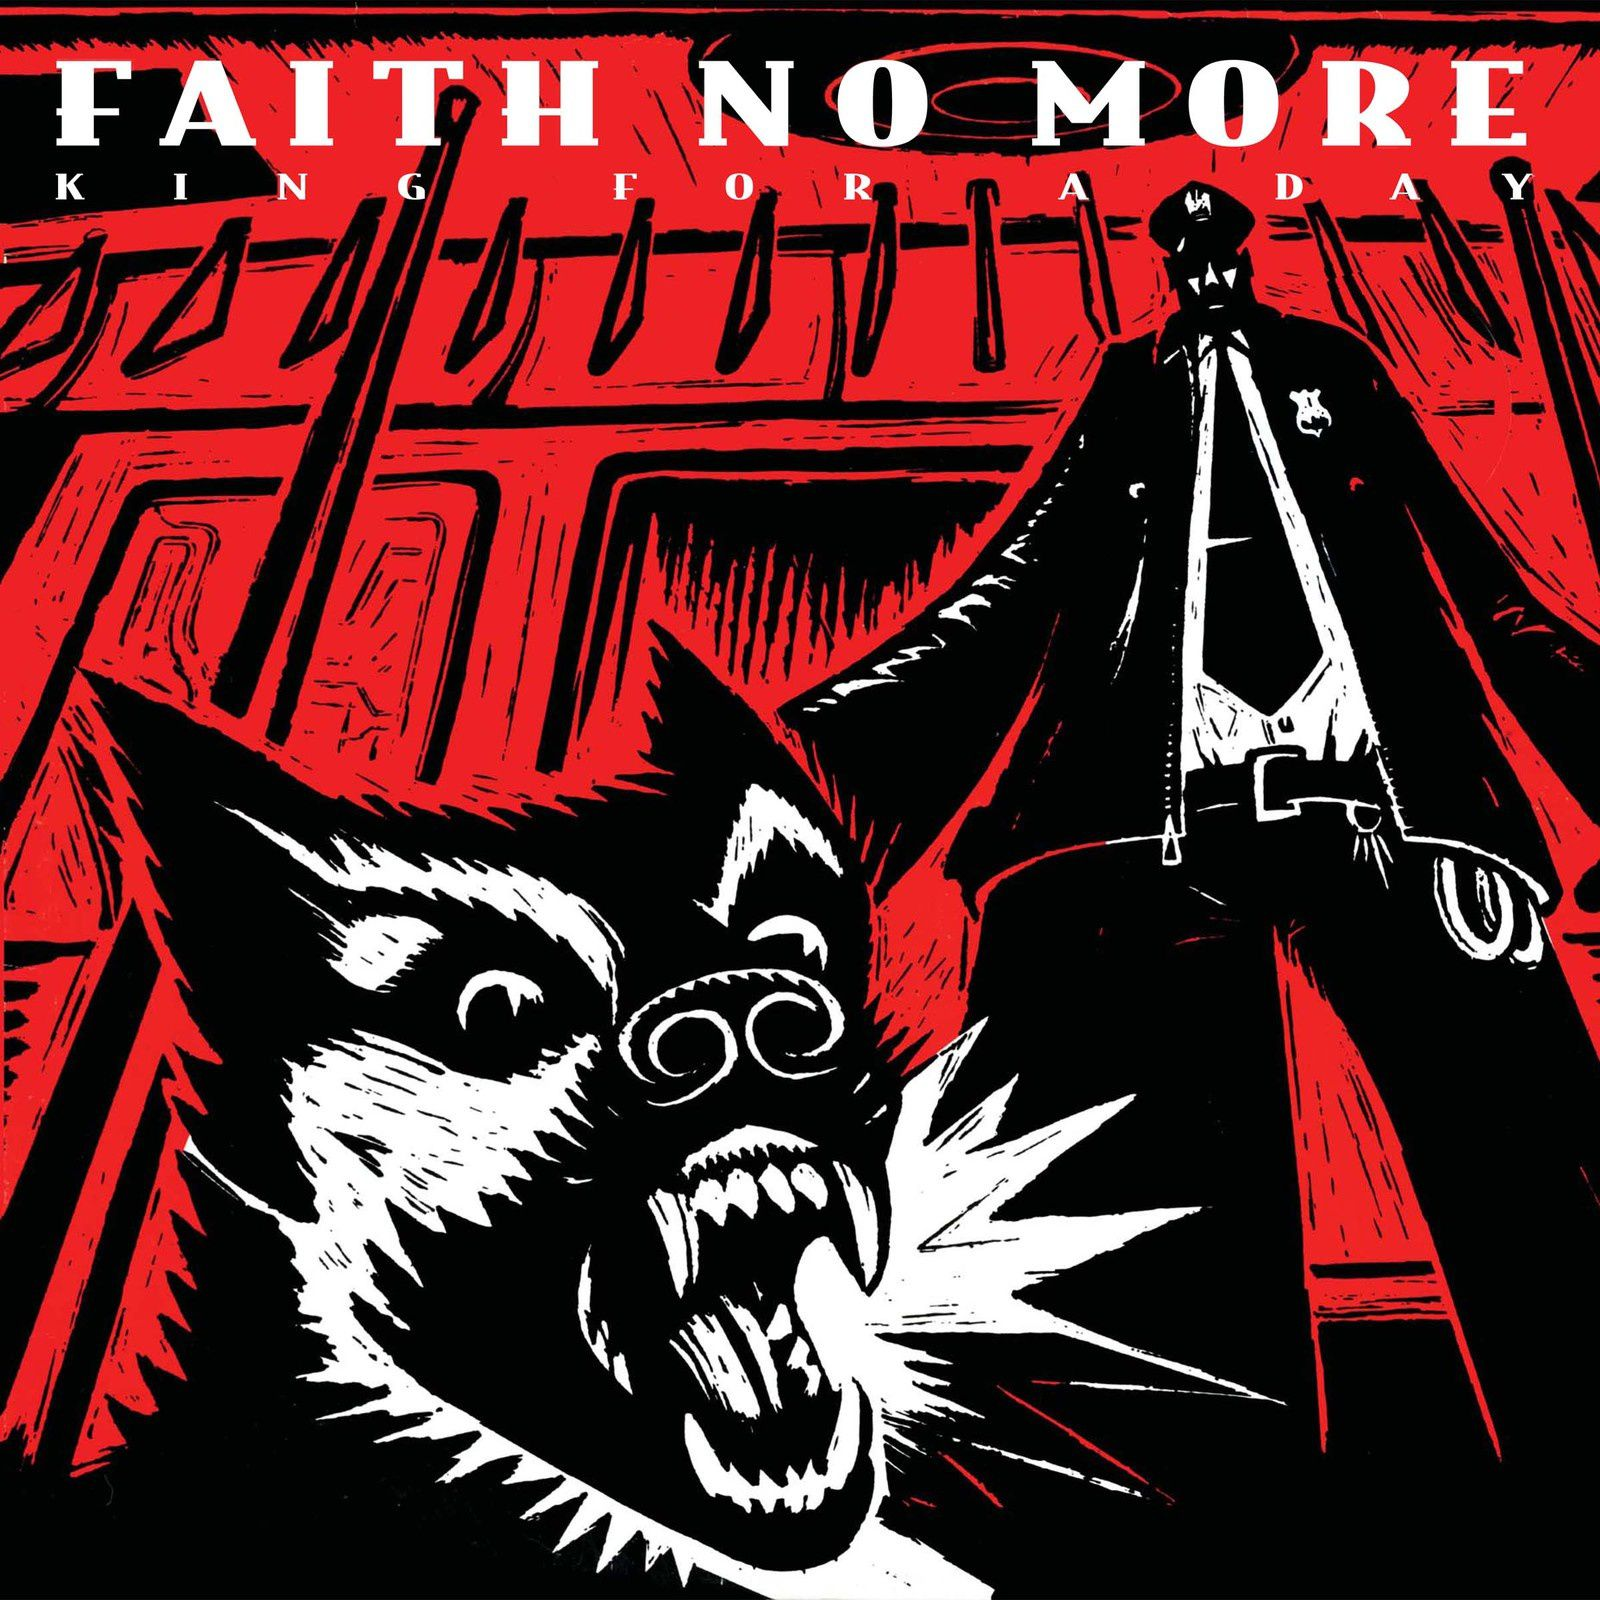 CD review FAITH NO MORE &quot&#x3B;King for Day...Fool for a Lifetime&quot&#x3B; &amp&#x3B; &quot&#x3B;Album of the Year&quot&#x3B; re-issue